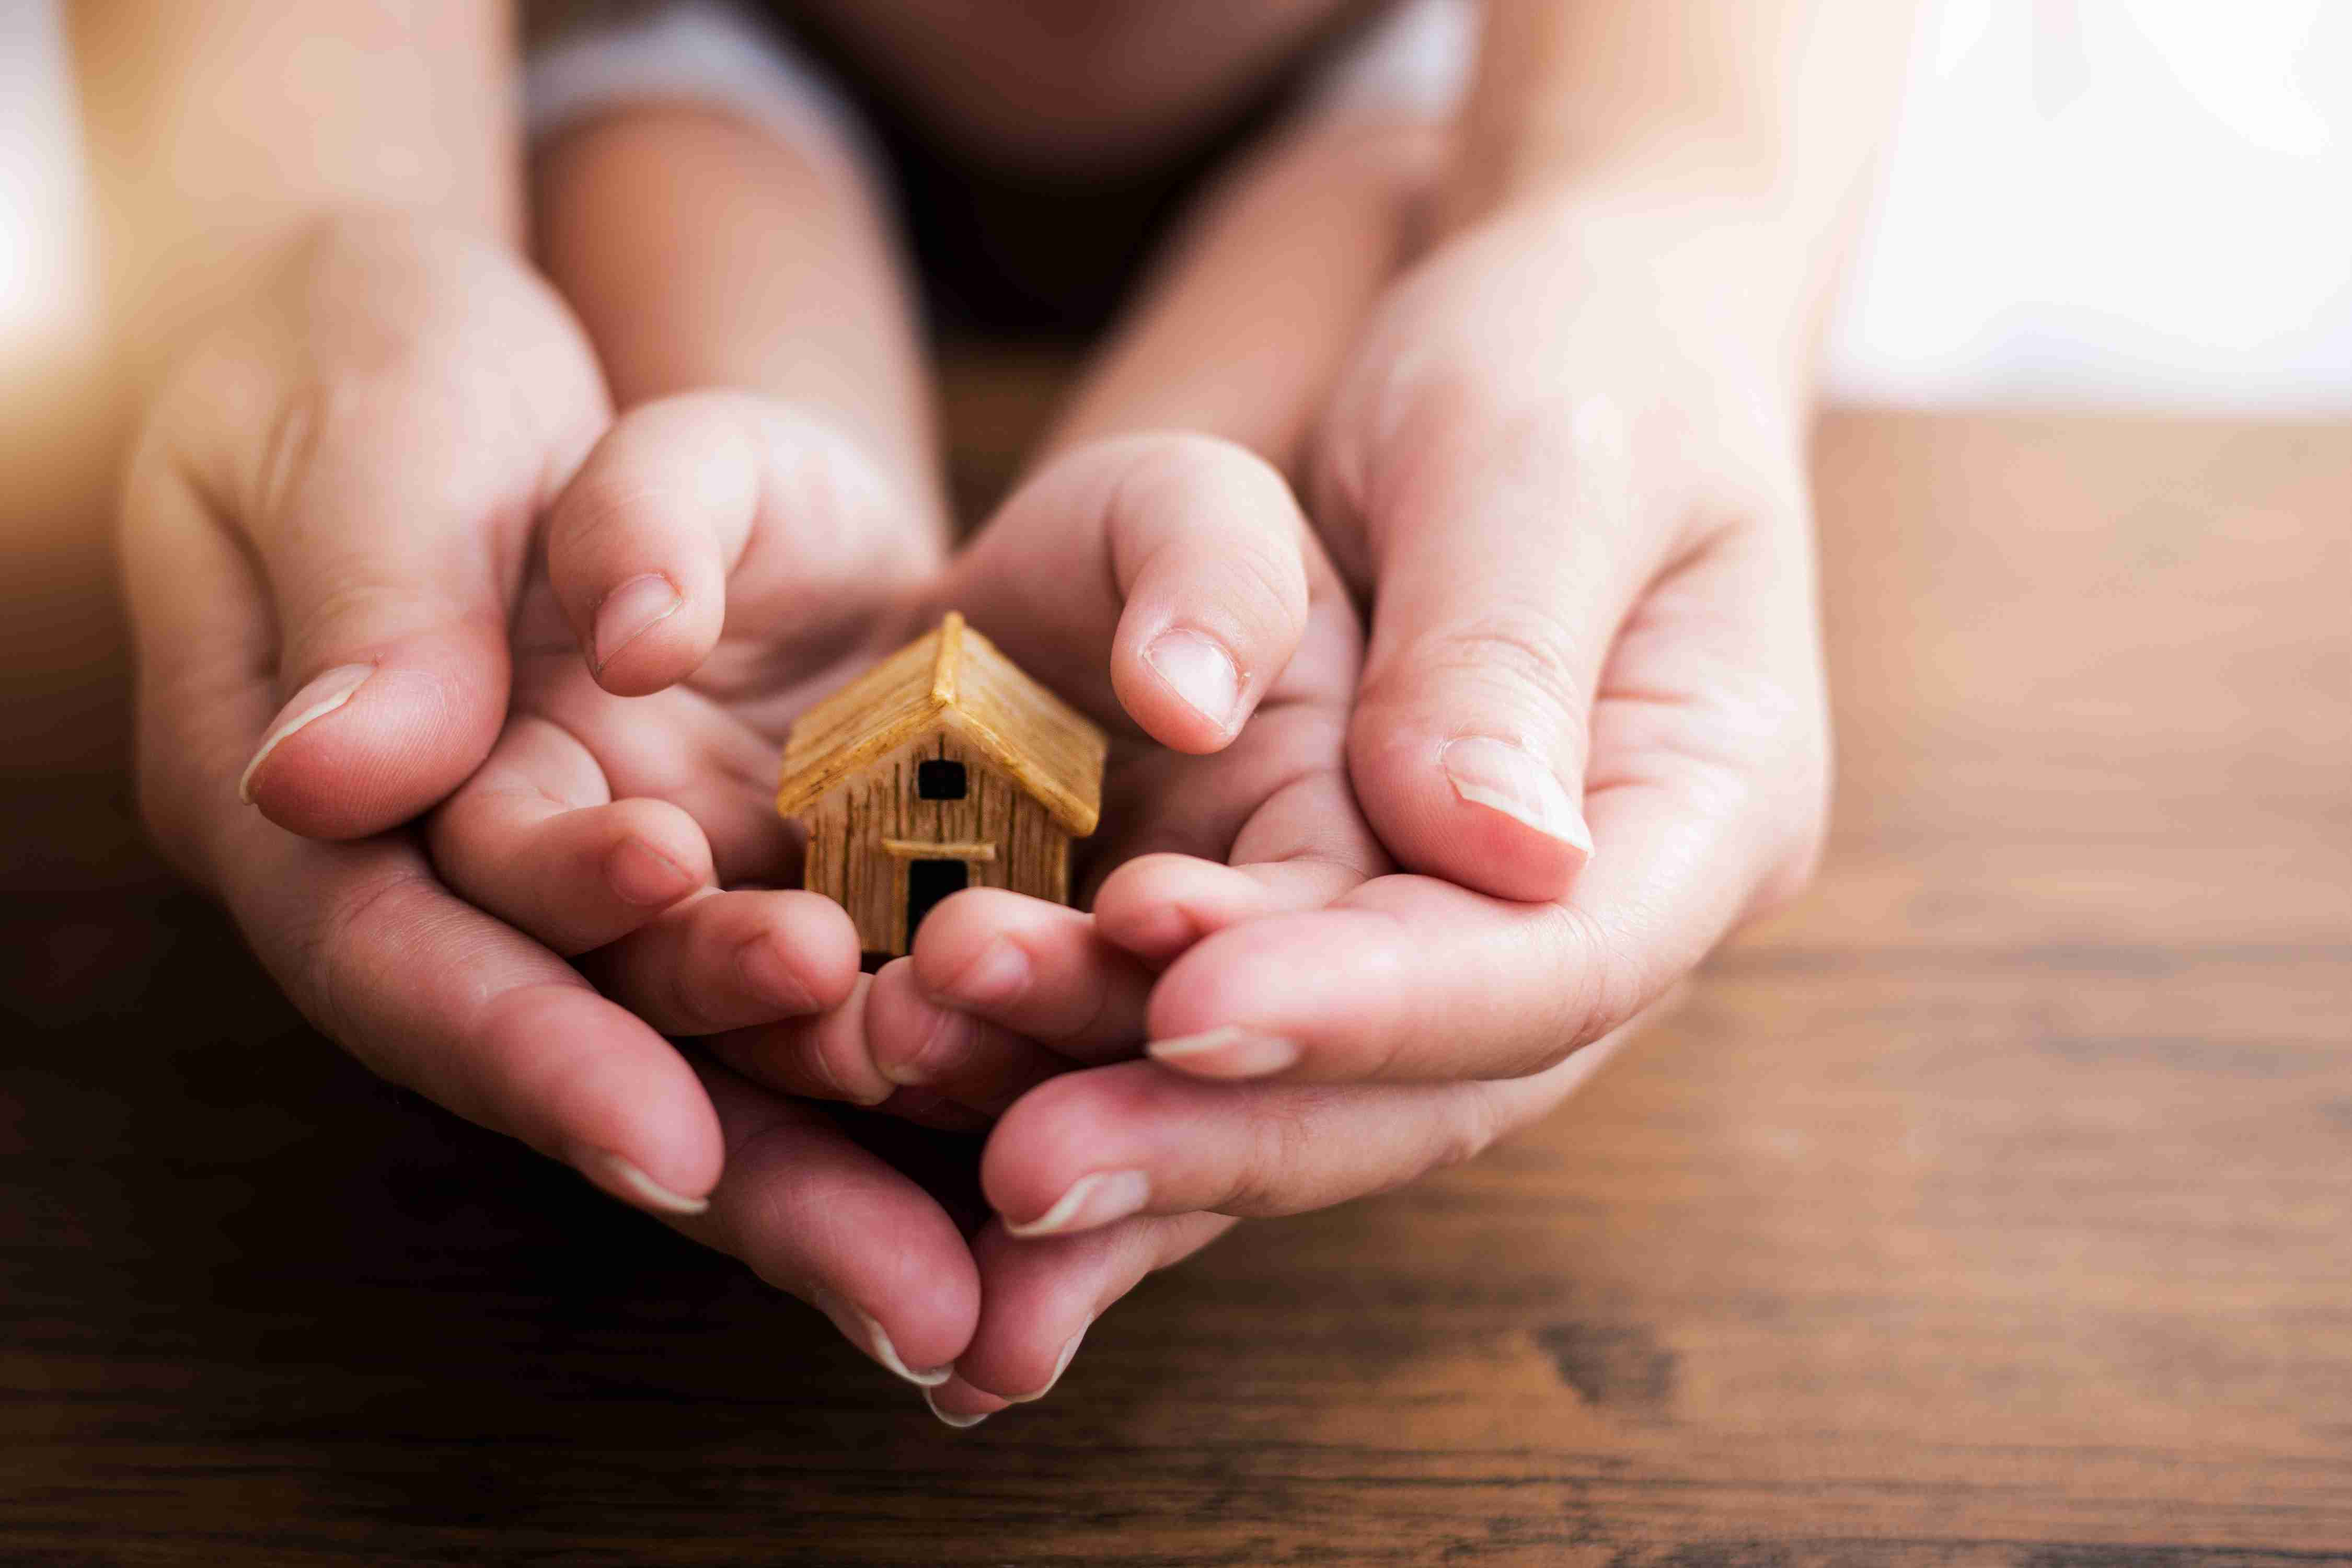 Hands holding small house shows that people set budgets to reach a future goal